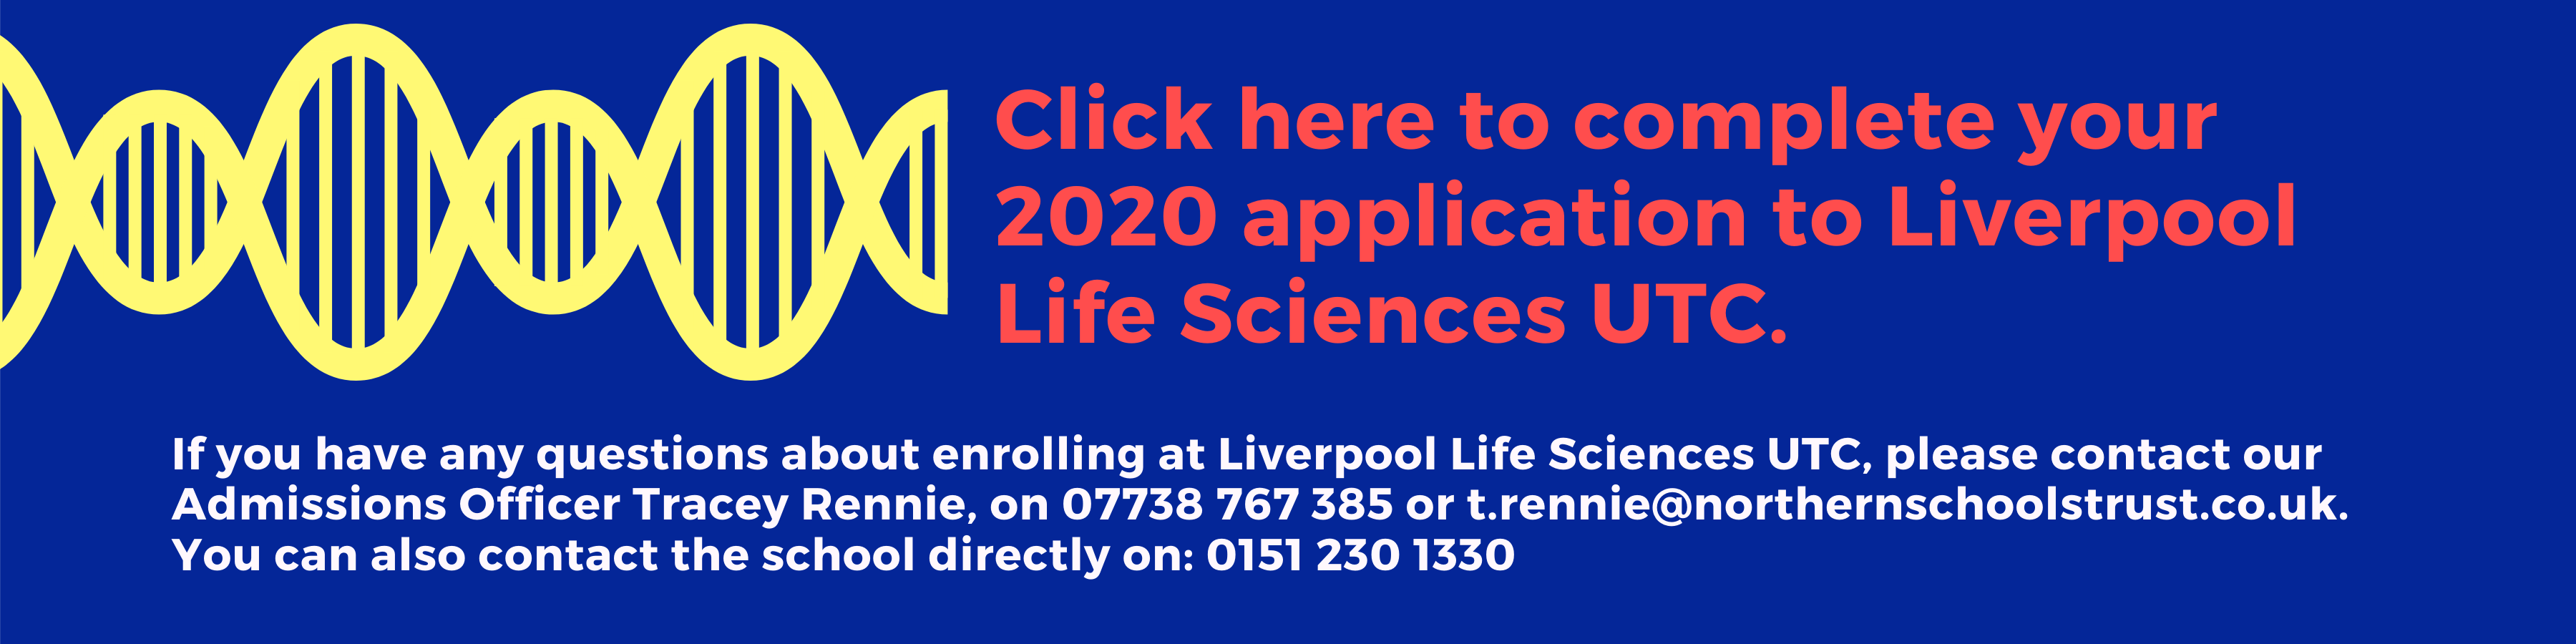 Apply to Liverpool Lifesciences UTC